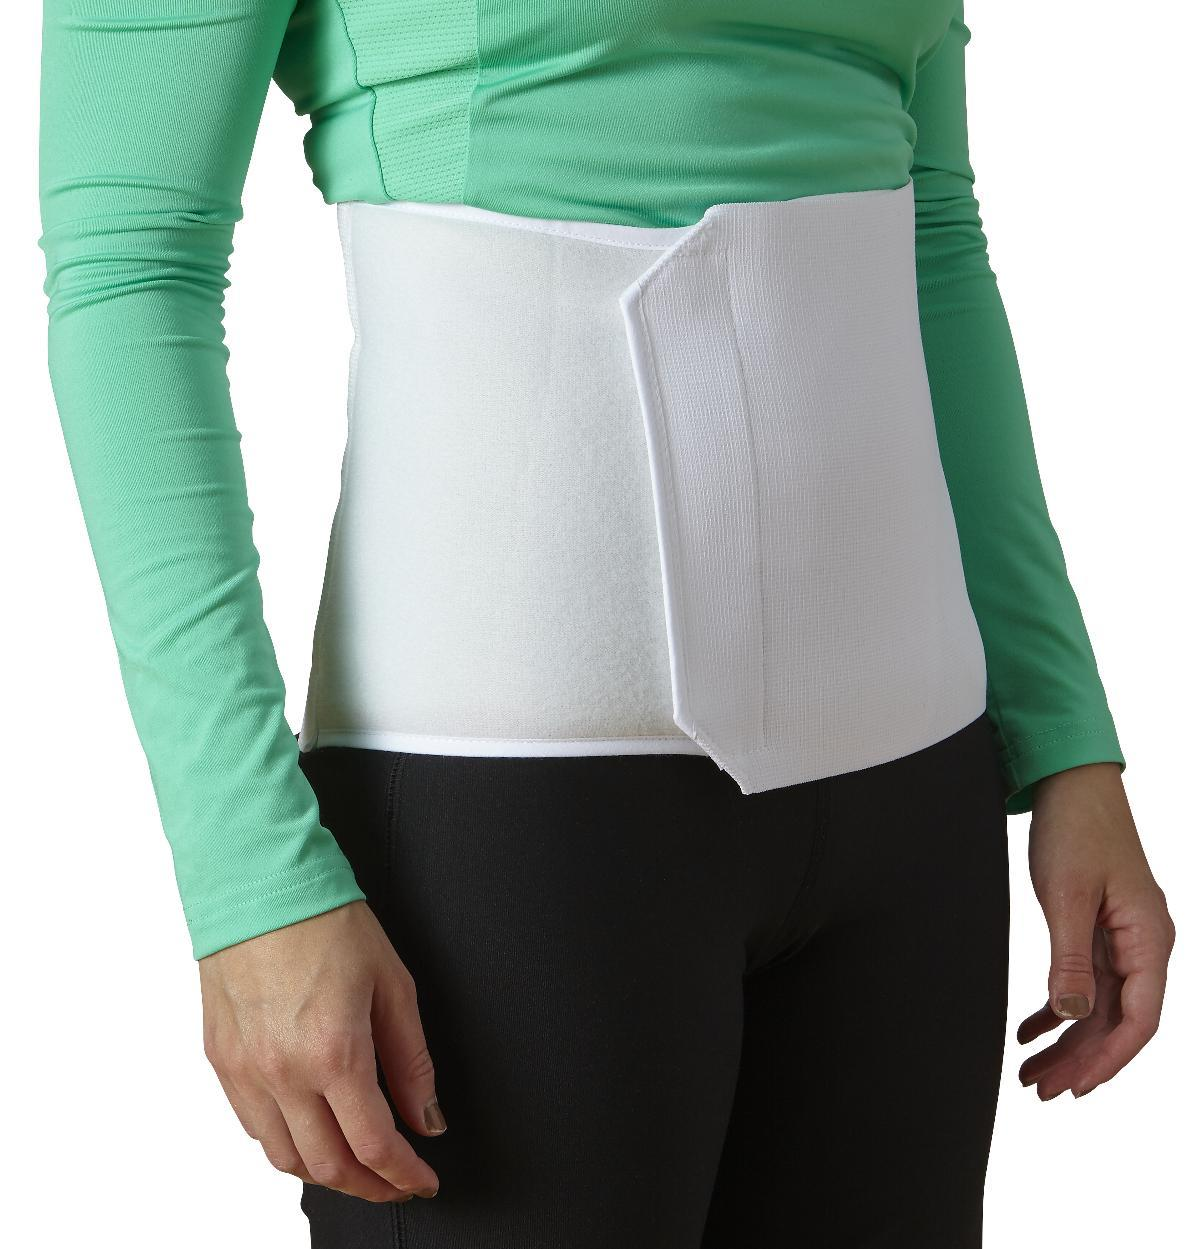 Therapy & Fitness Orthopedic Soft Goods Abdominal Binders & Ribs Belts - Mds169022 - Binder Abdominal Unisize 30-45 9 MDS169022